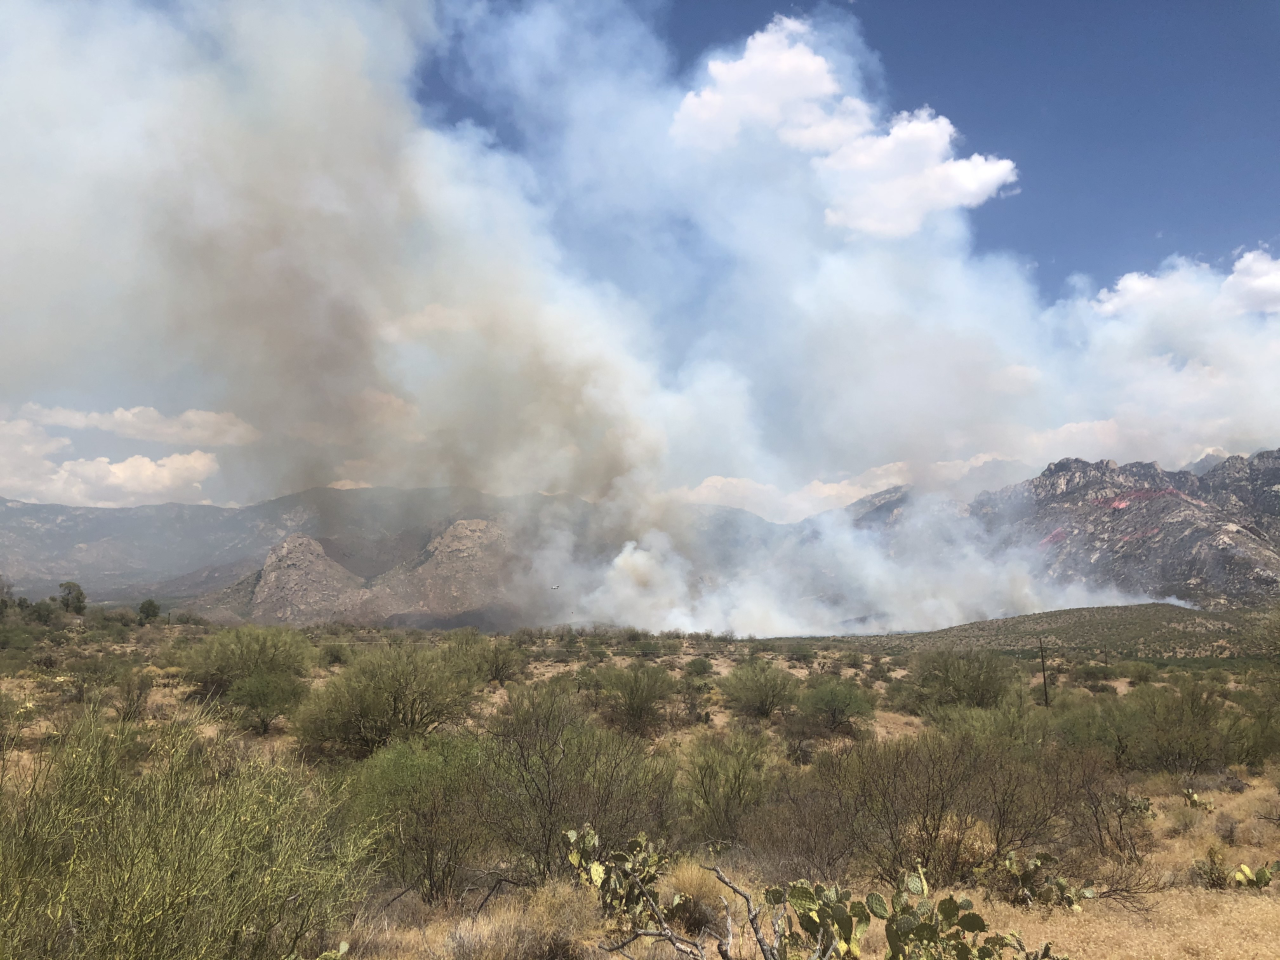 The Bighorn Fire continues it's slow spread northeast of Catalina State Park